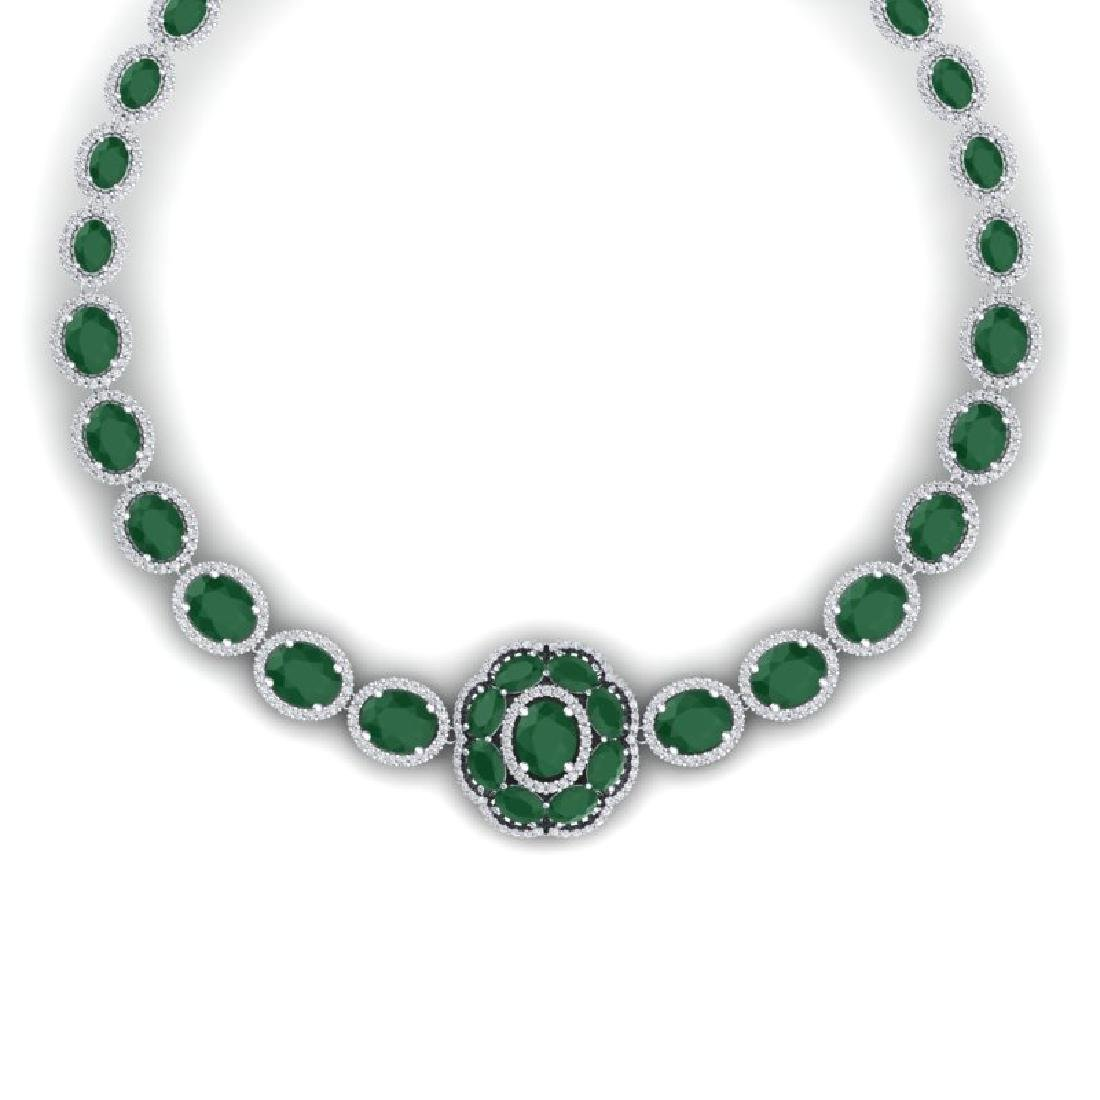 58.33 CTW Royalty Emerald & VS Diamond Necklace 18K - 2